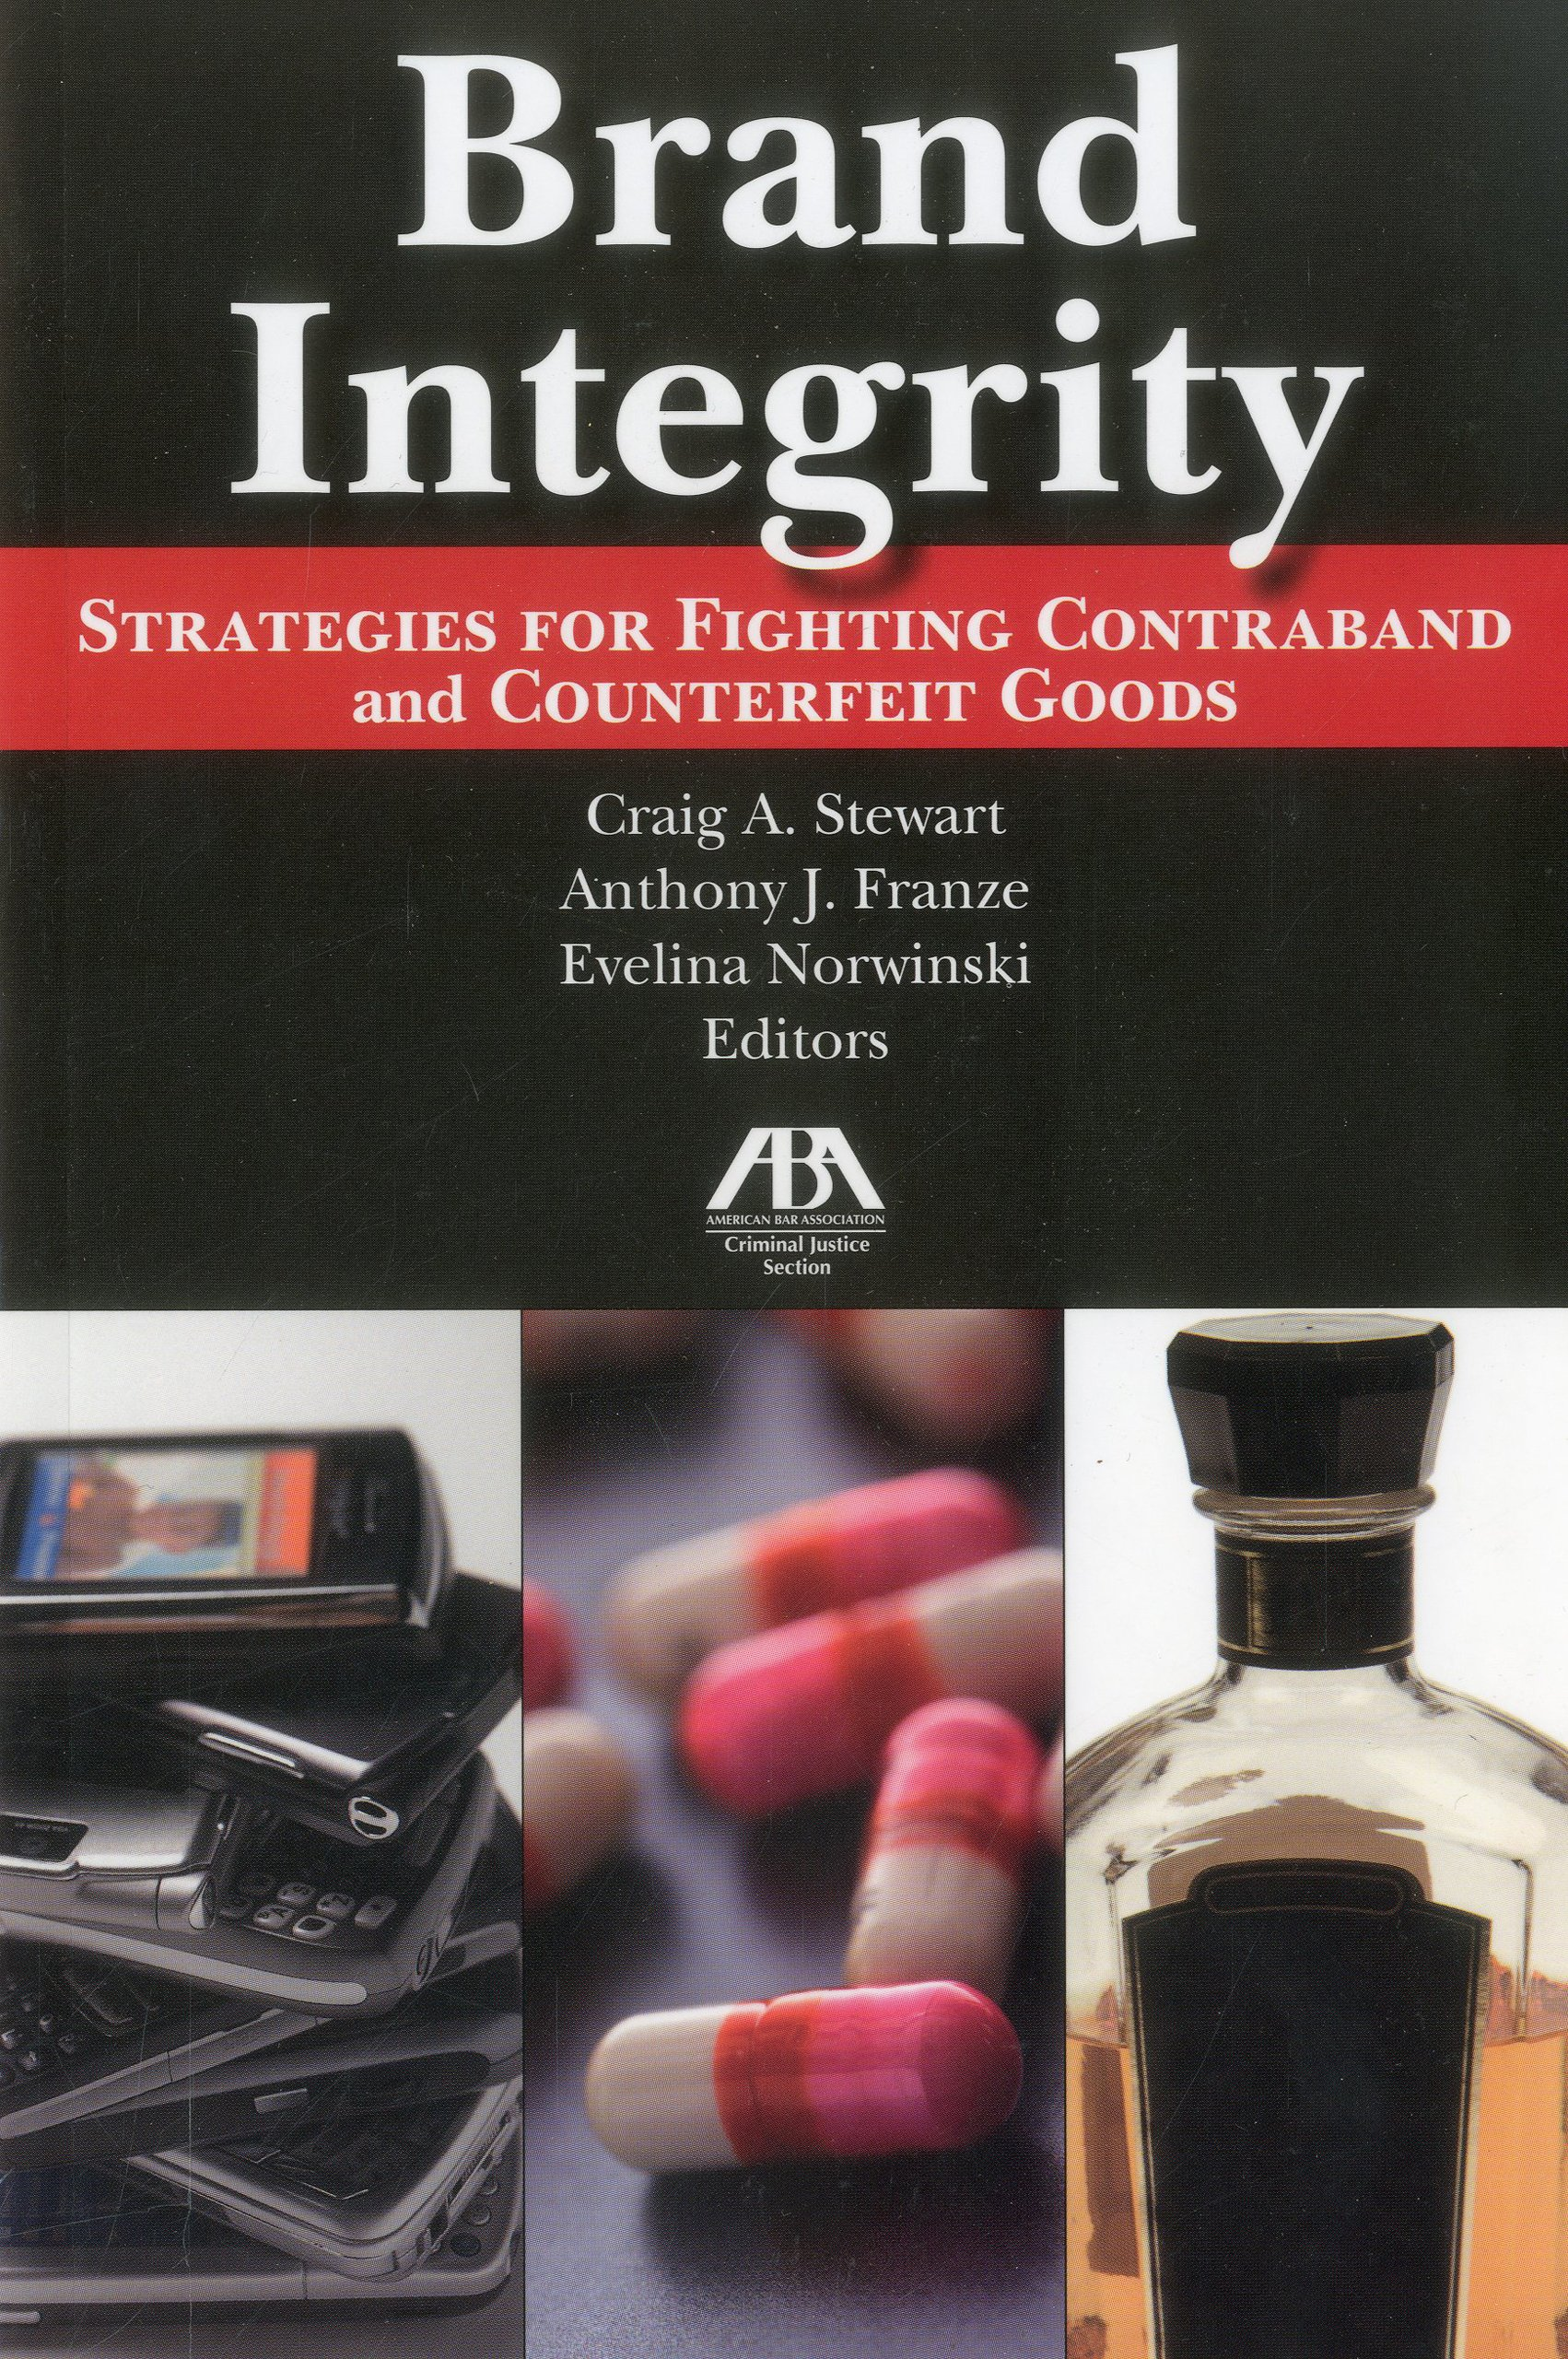 Brand Integrity: Strategies for Fighting Contraband and Counterfeit Goods pdf